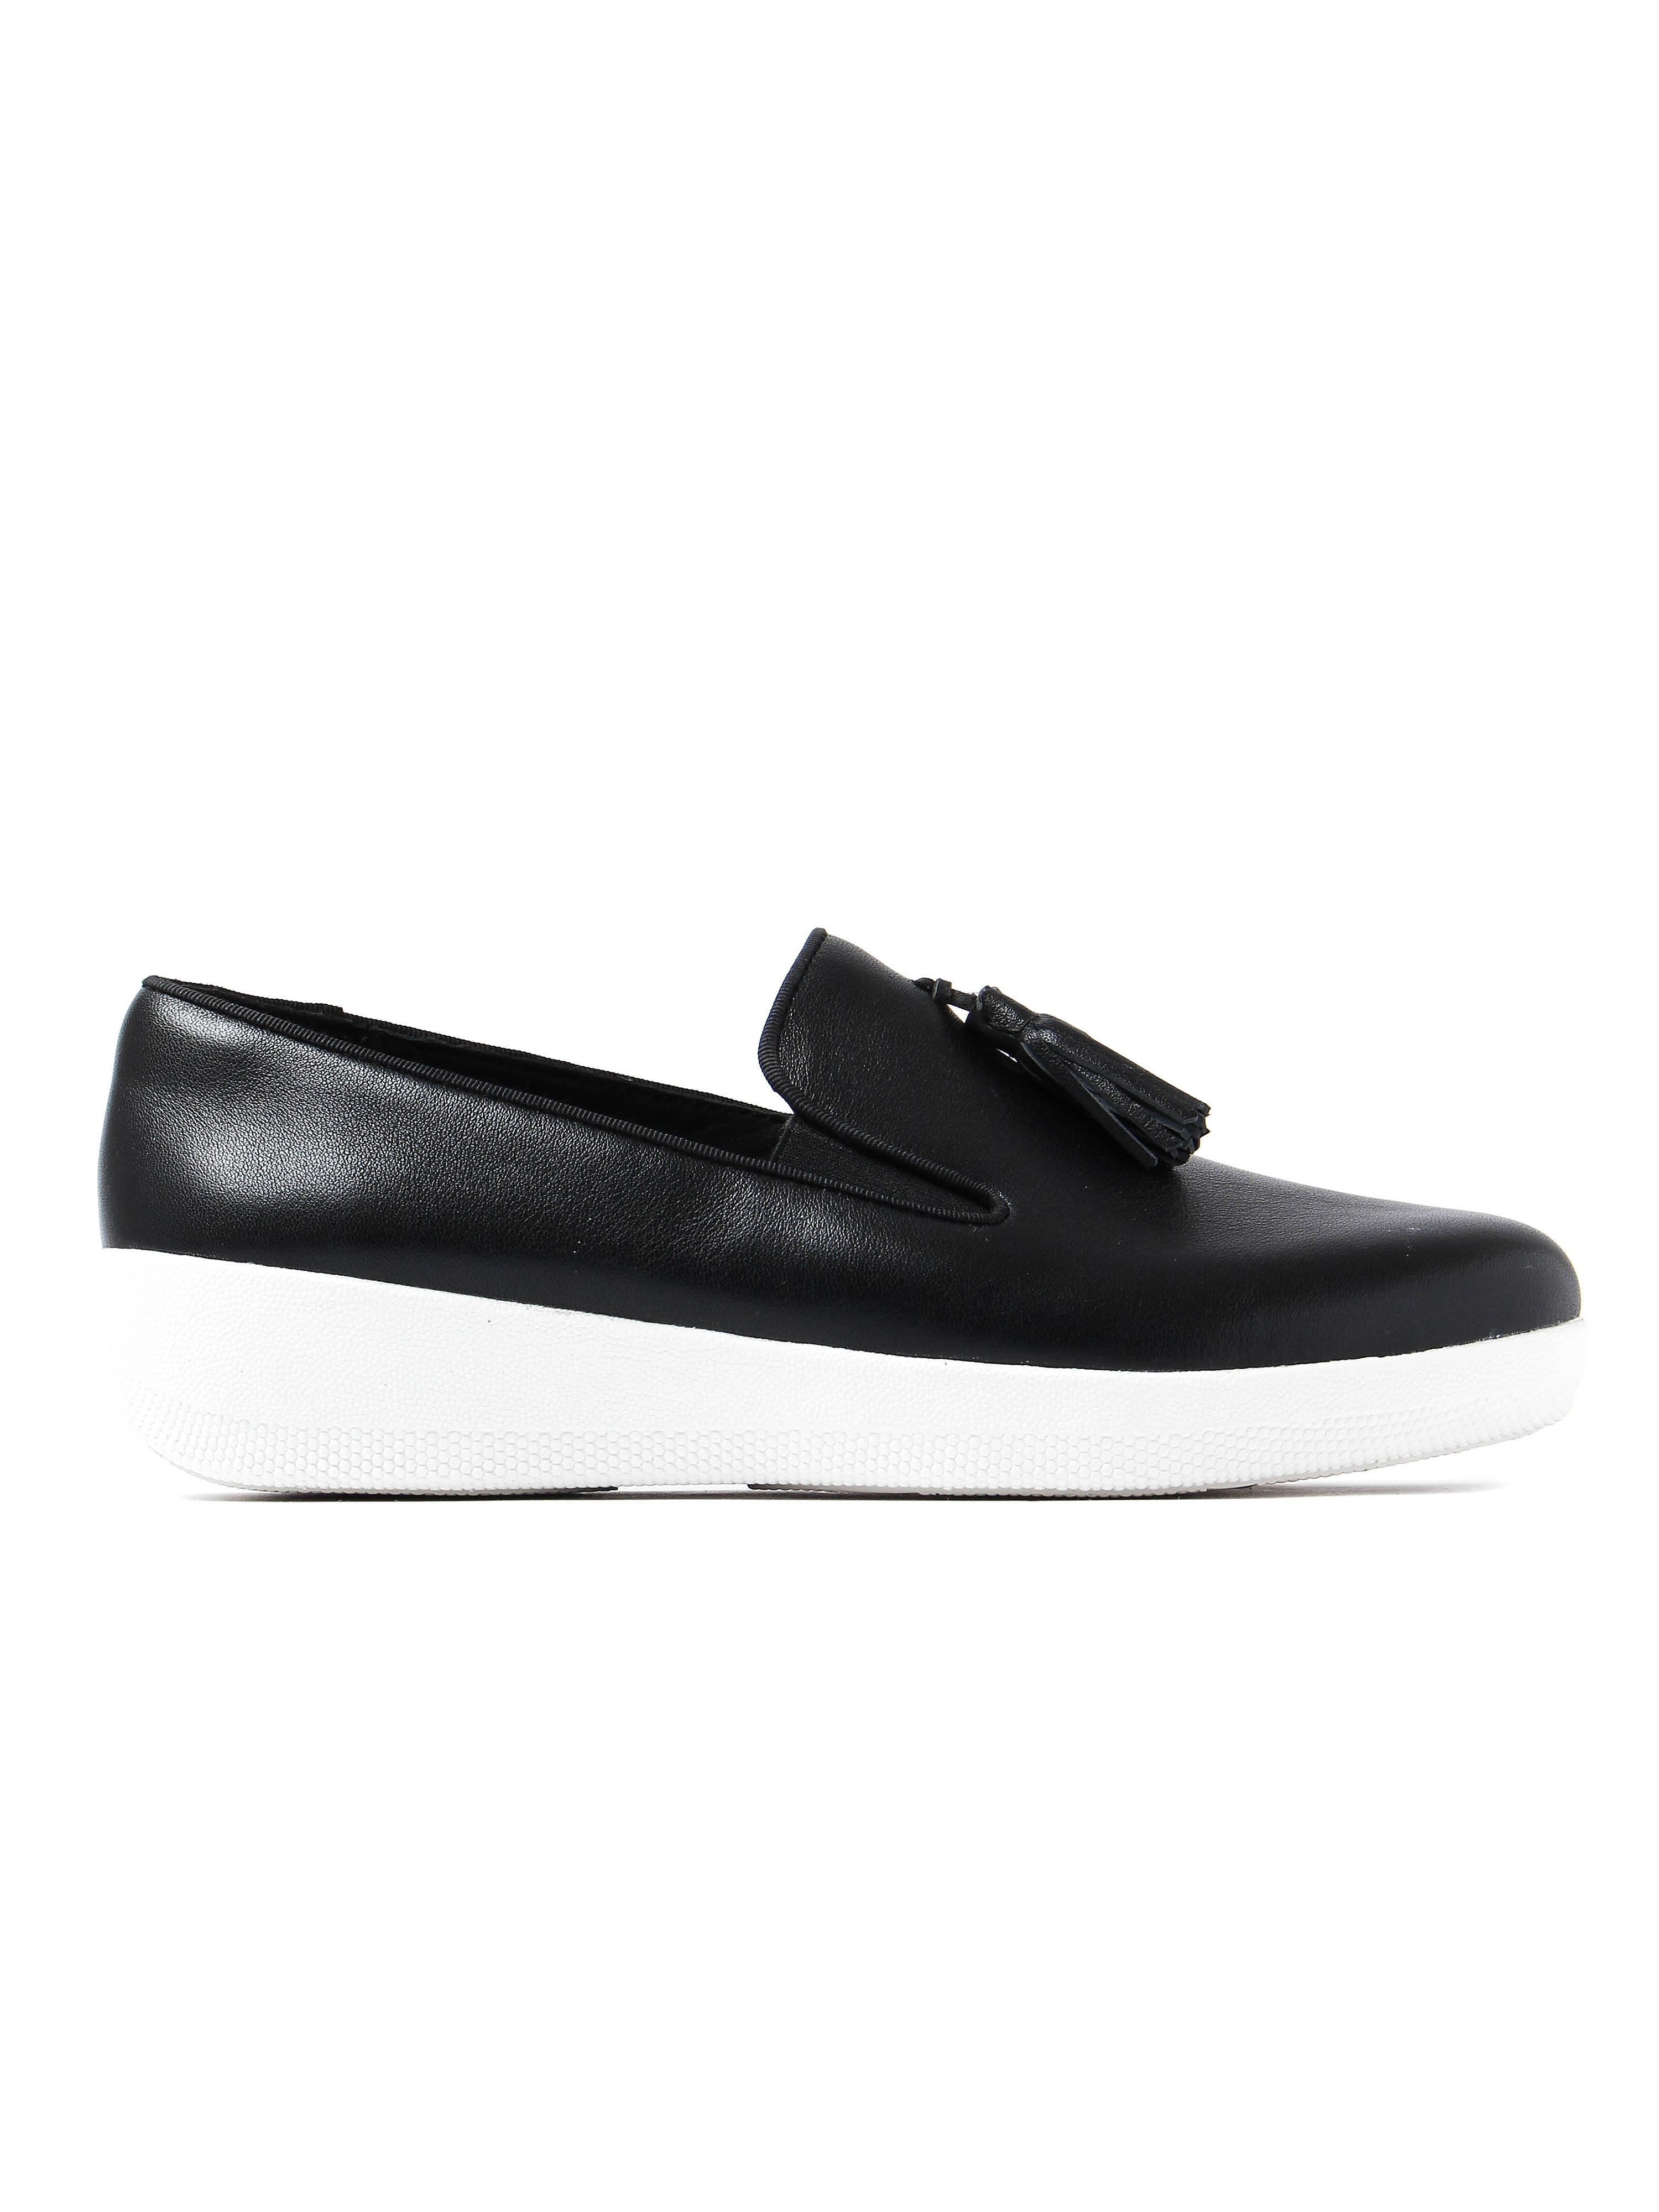 FitFlop Womens Tassel Superskate™ Shoe - Black Leather